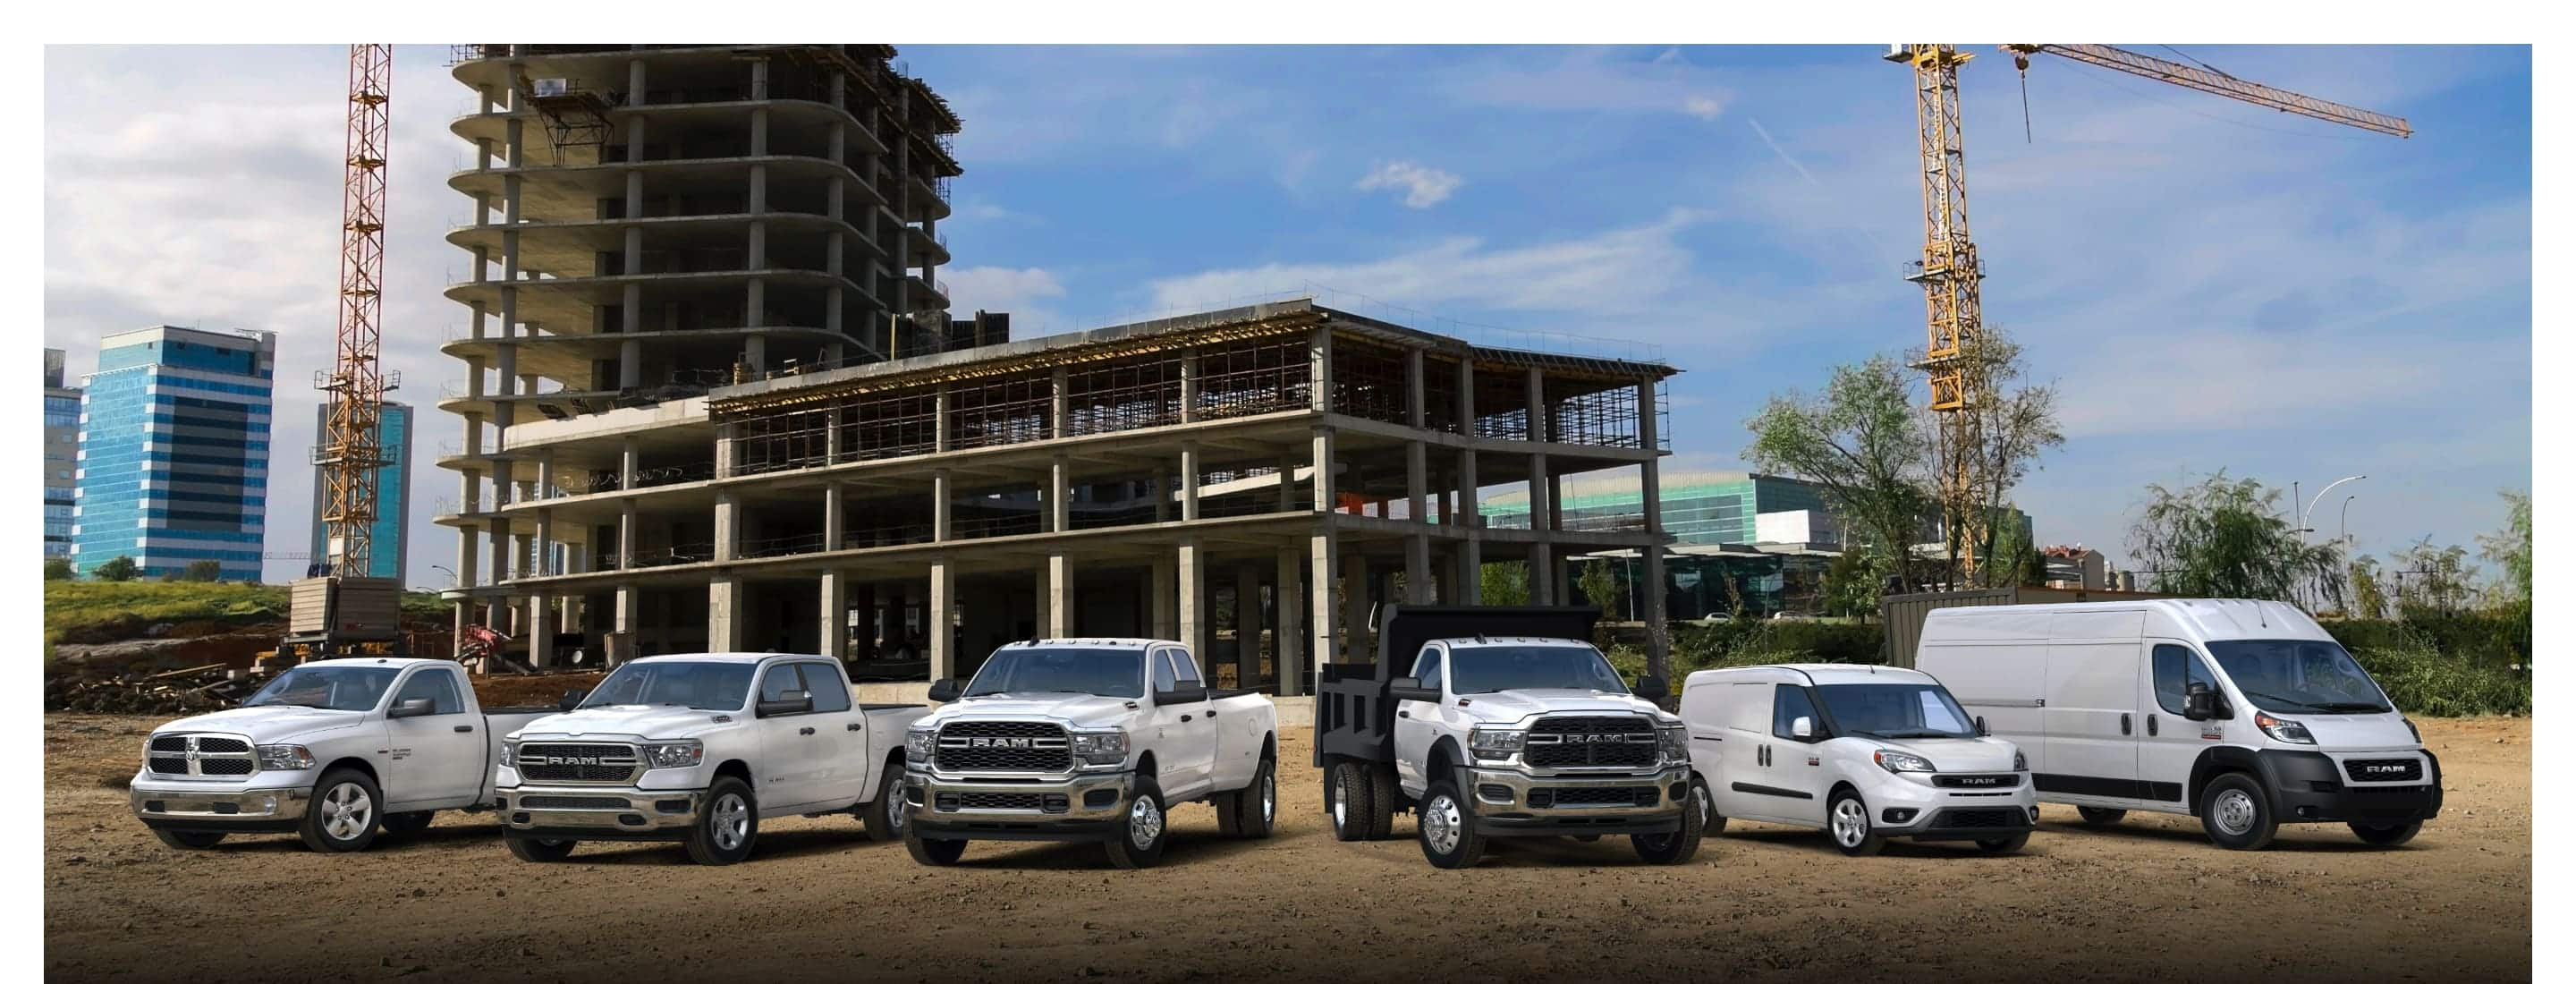 The 2021 Ram lineup parked at a commercial construction site. From left to right: four Tradesman models--a Ram 1500 Classic, Ram 1500, Ram 3500 and Ram 5500, followed by a Ram ProMaster City SLT Cargo Van and a Ram ProMaster 2500 Cargo Van.